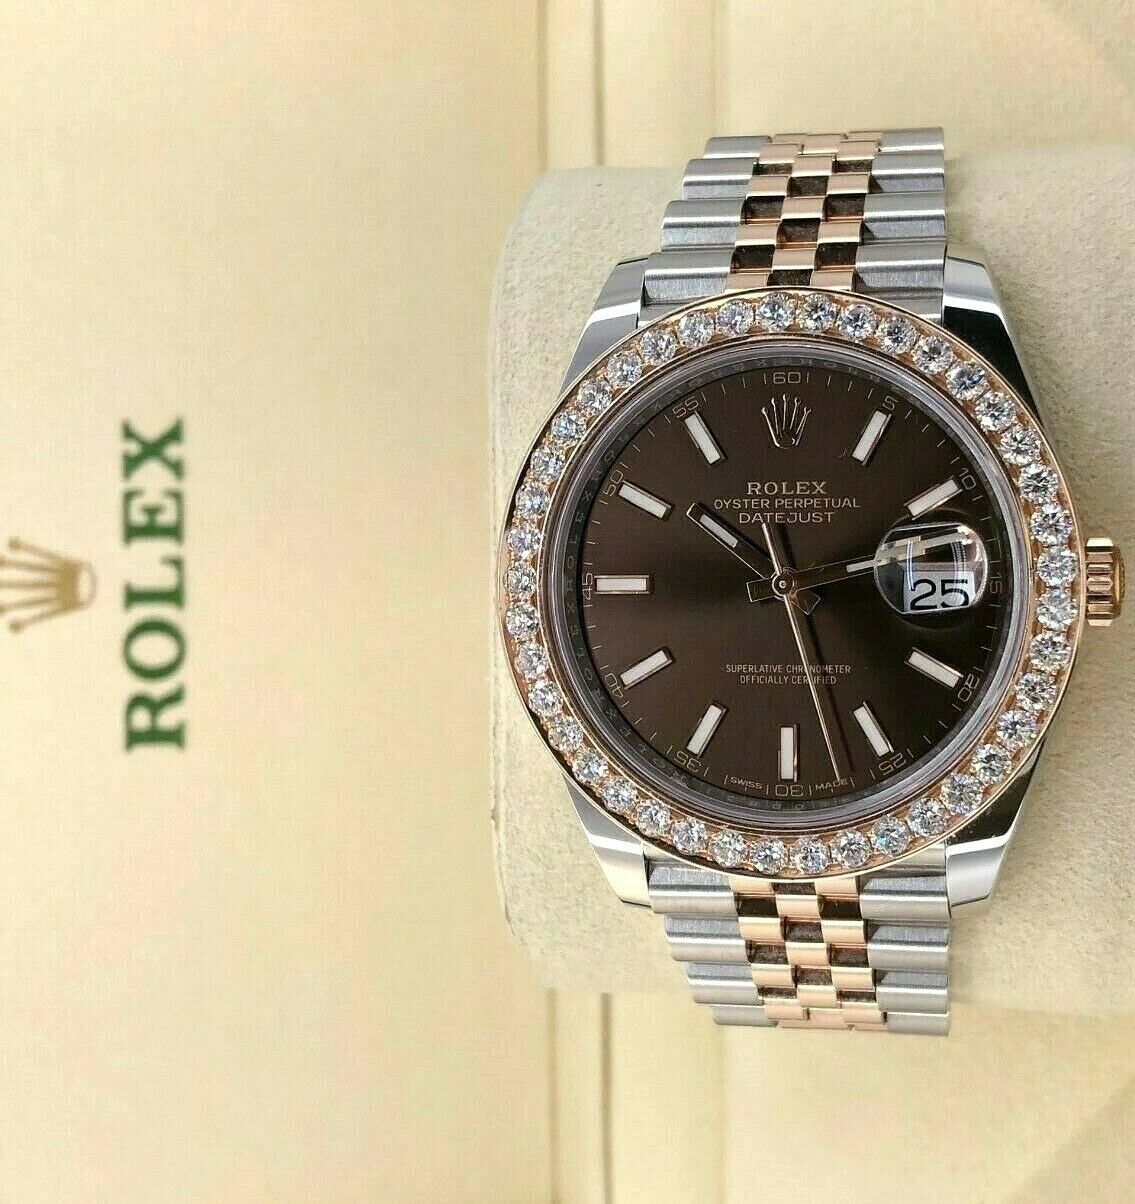 Rolex Datejust II Diamond Bezel Watch 18K Rose Gold Steel Jubilee Band 126331